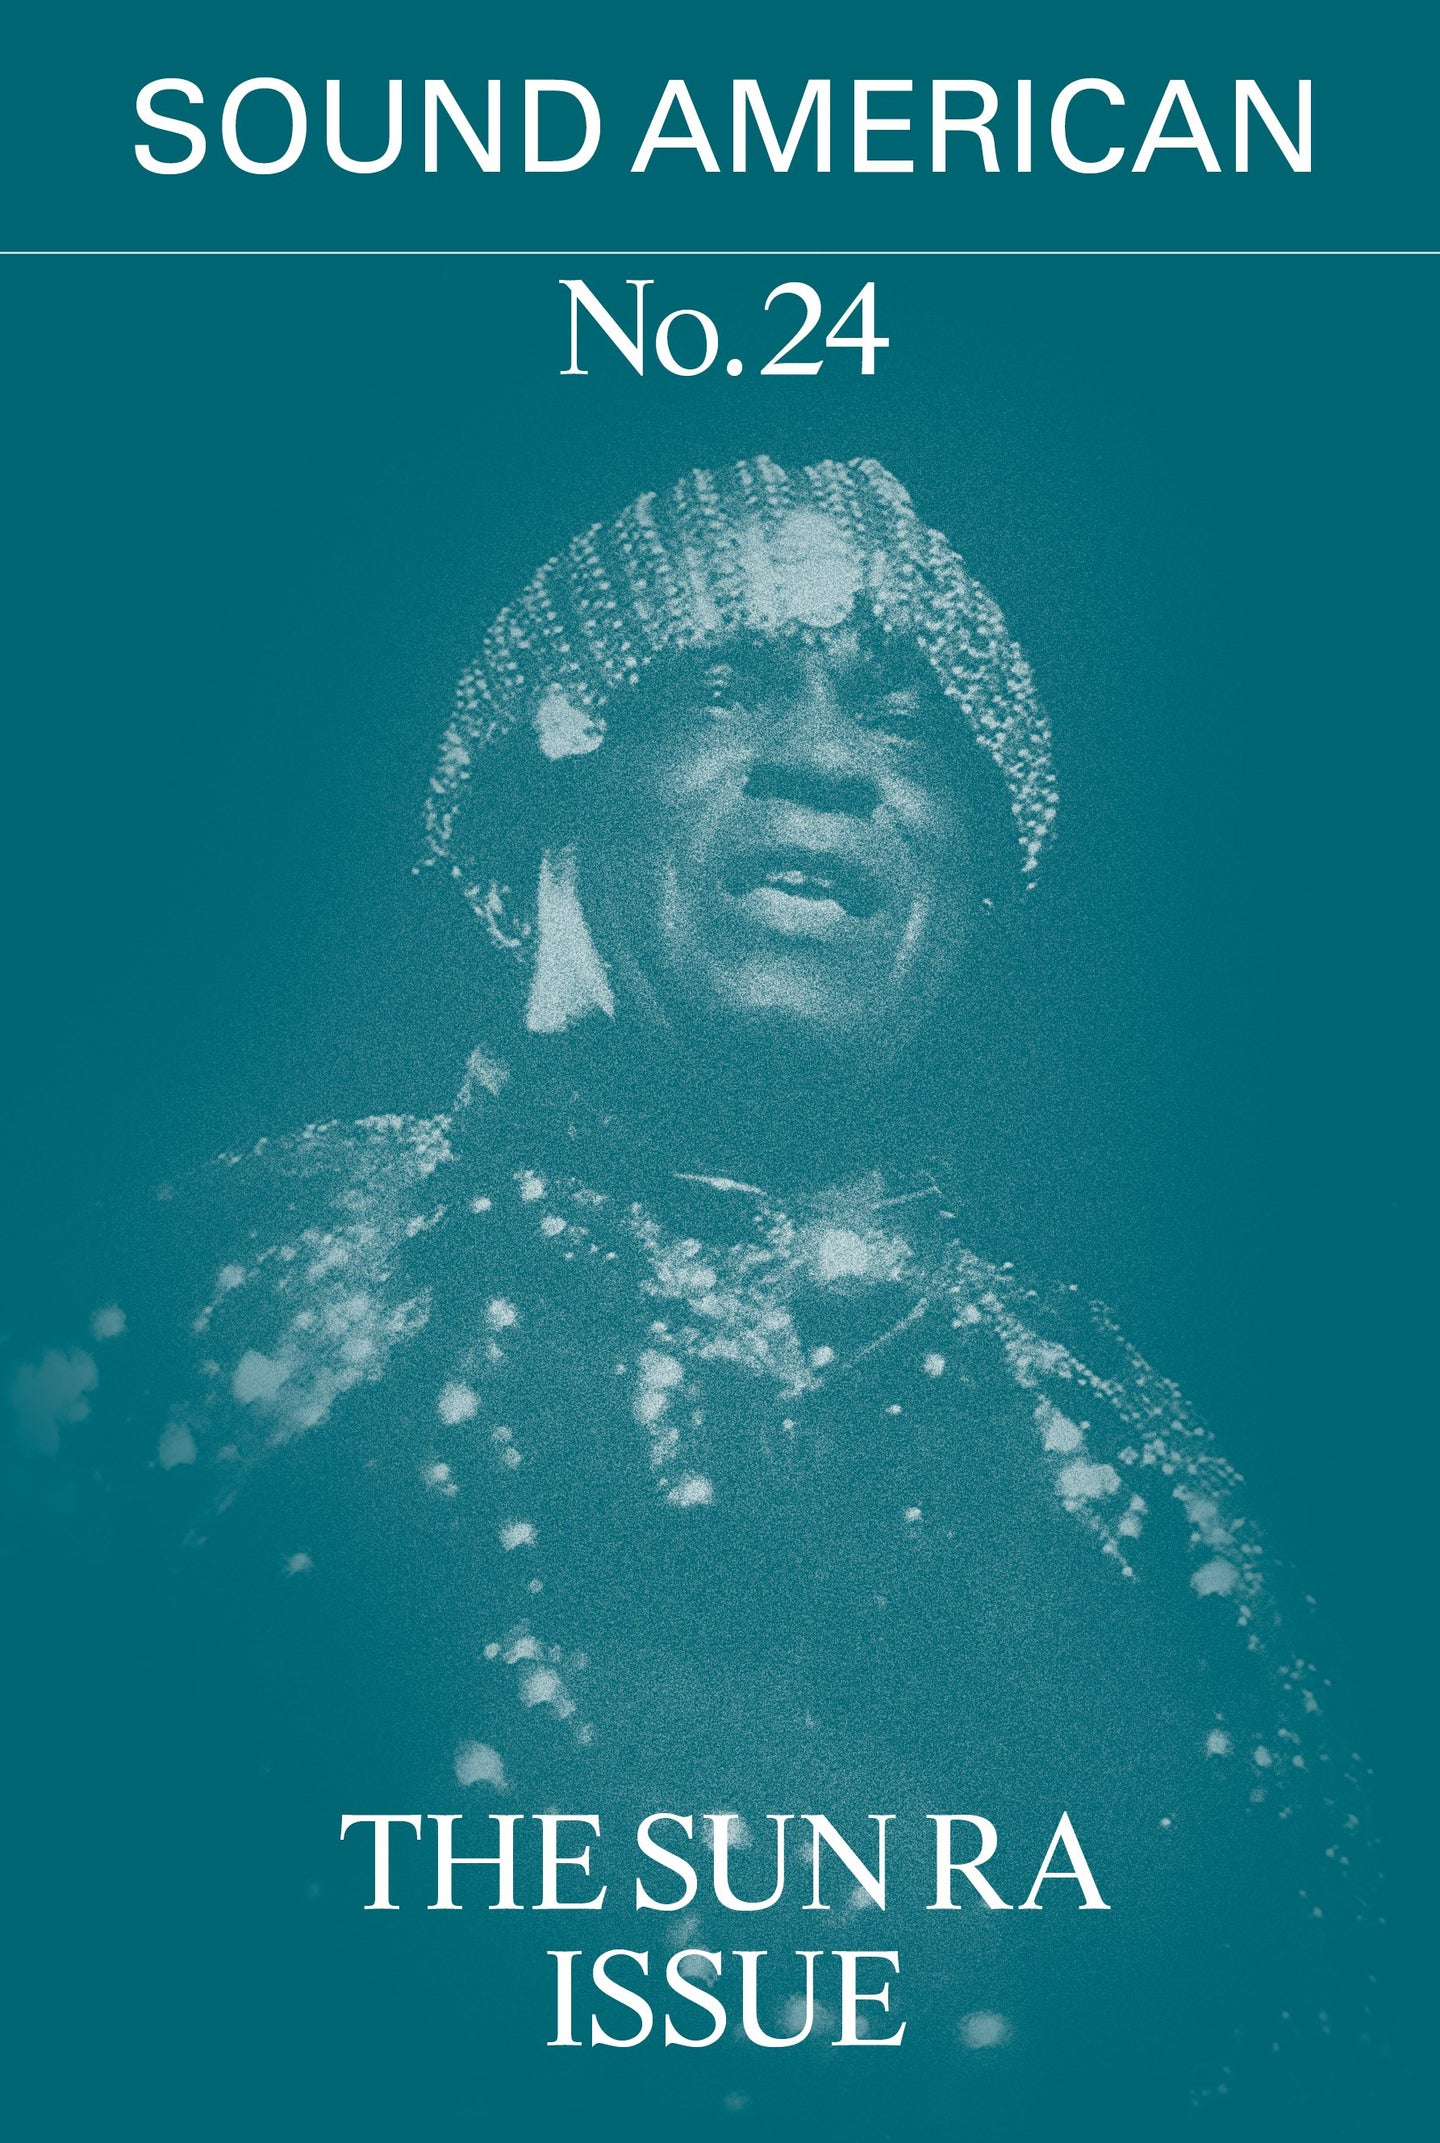 Sound American: No. 24 - The Sun Ra Issue